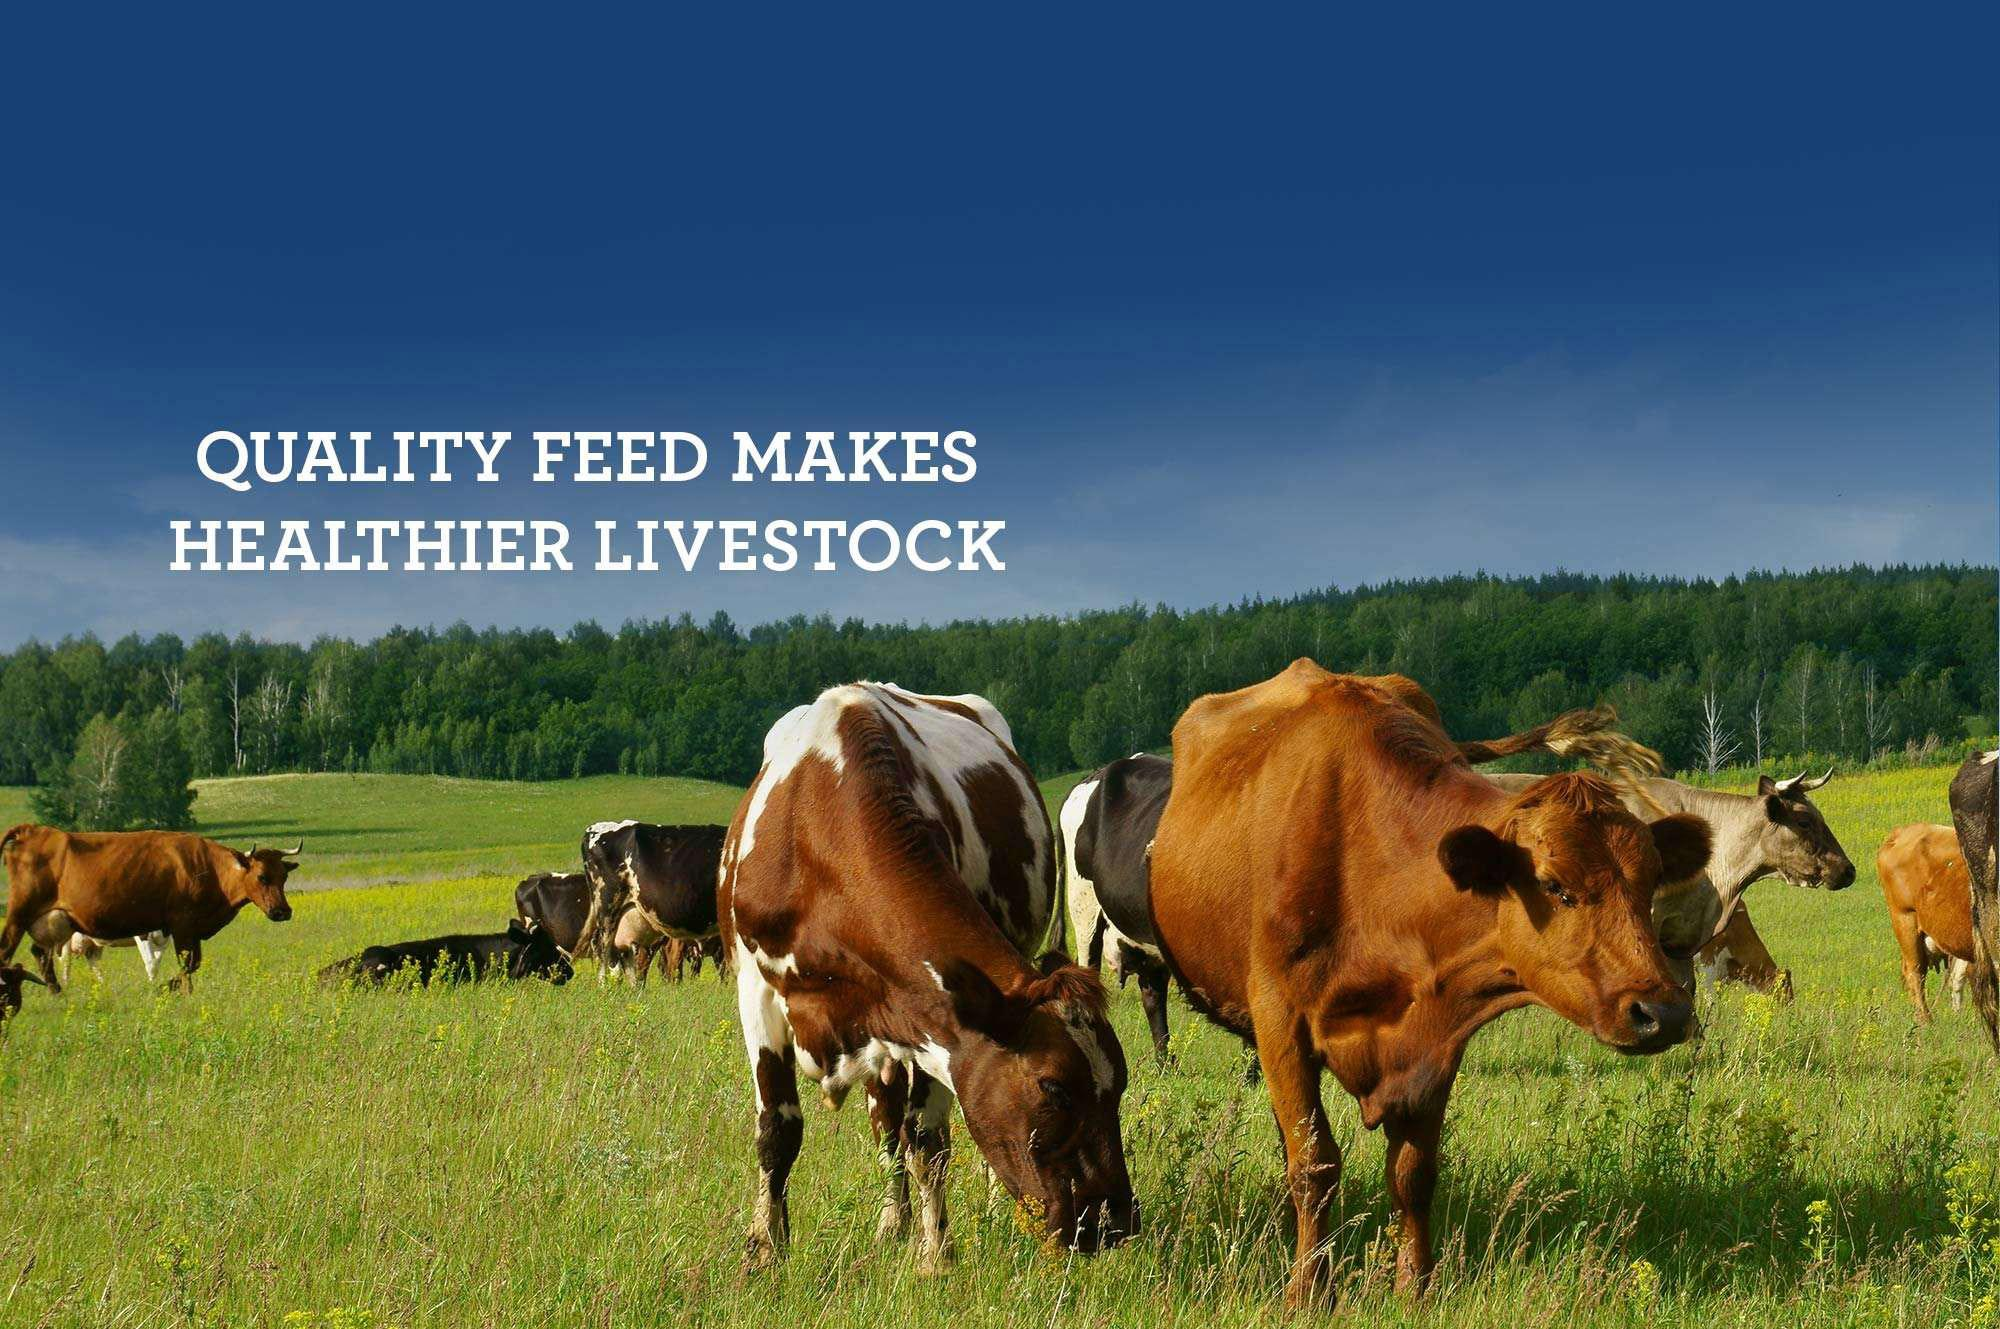 Where to buy - Quality feed makes healthier livestock